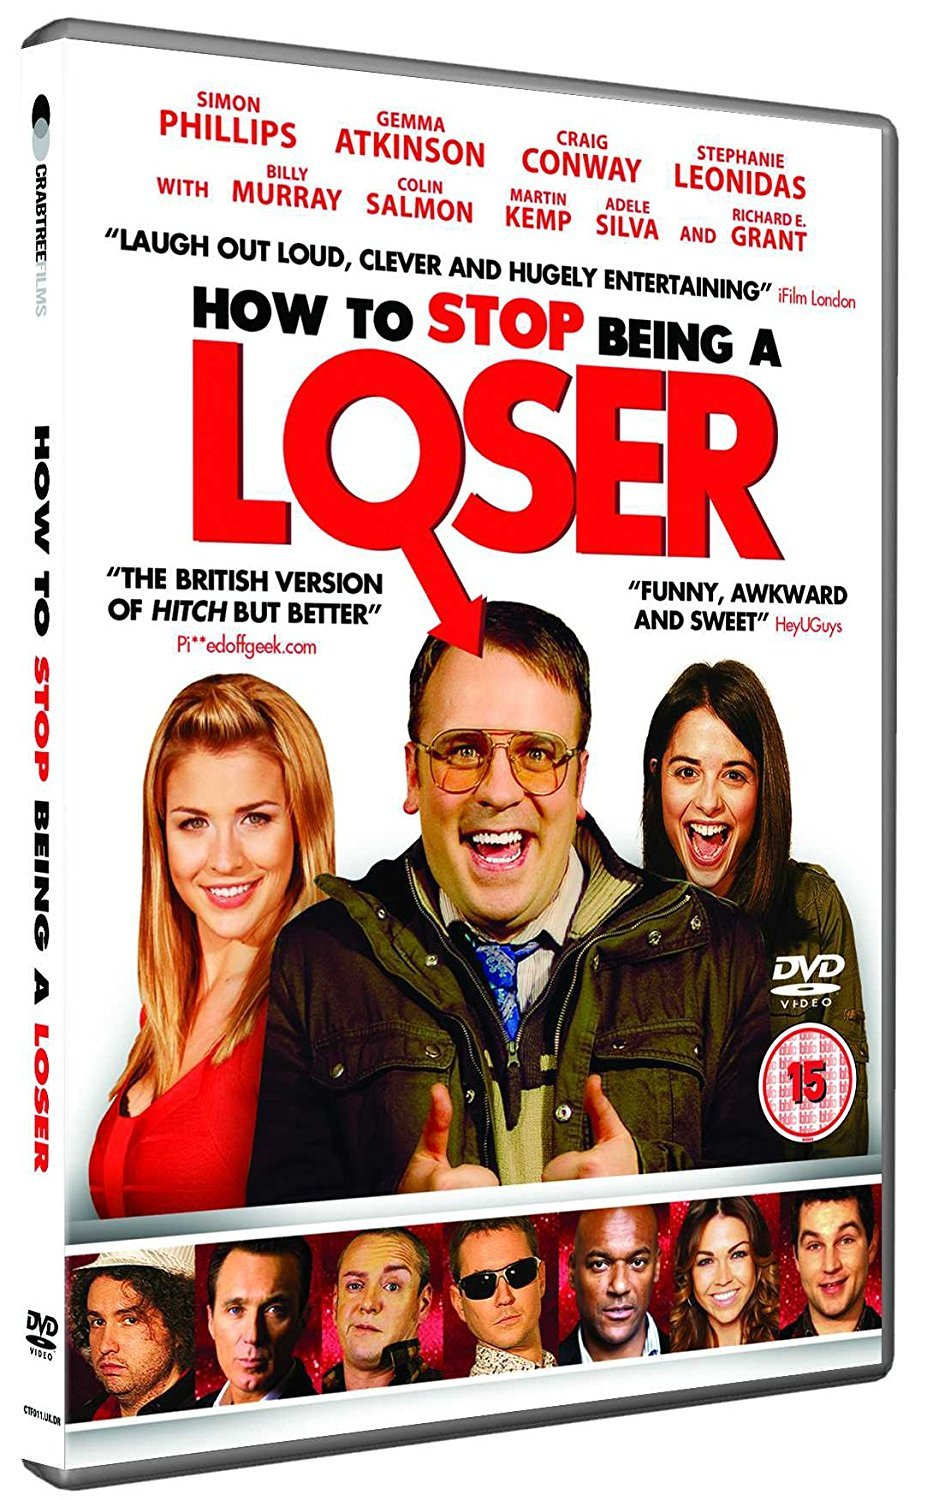 How To Stop Being A Loser Dvd Amazon Co Uk Simon Phillips Richard E Grant Martin Compston Gemma Atkinson Martin Kemp Billy Murray Dvd Blu Ray